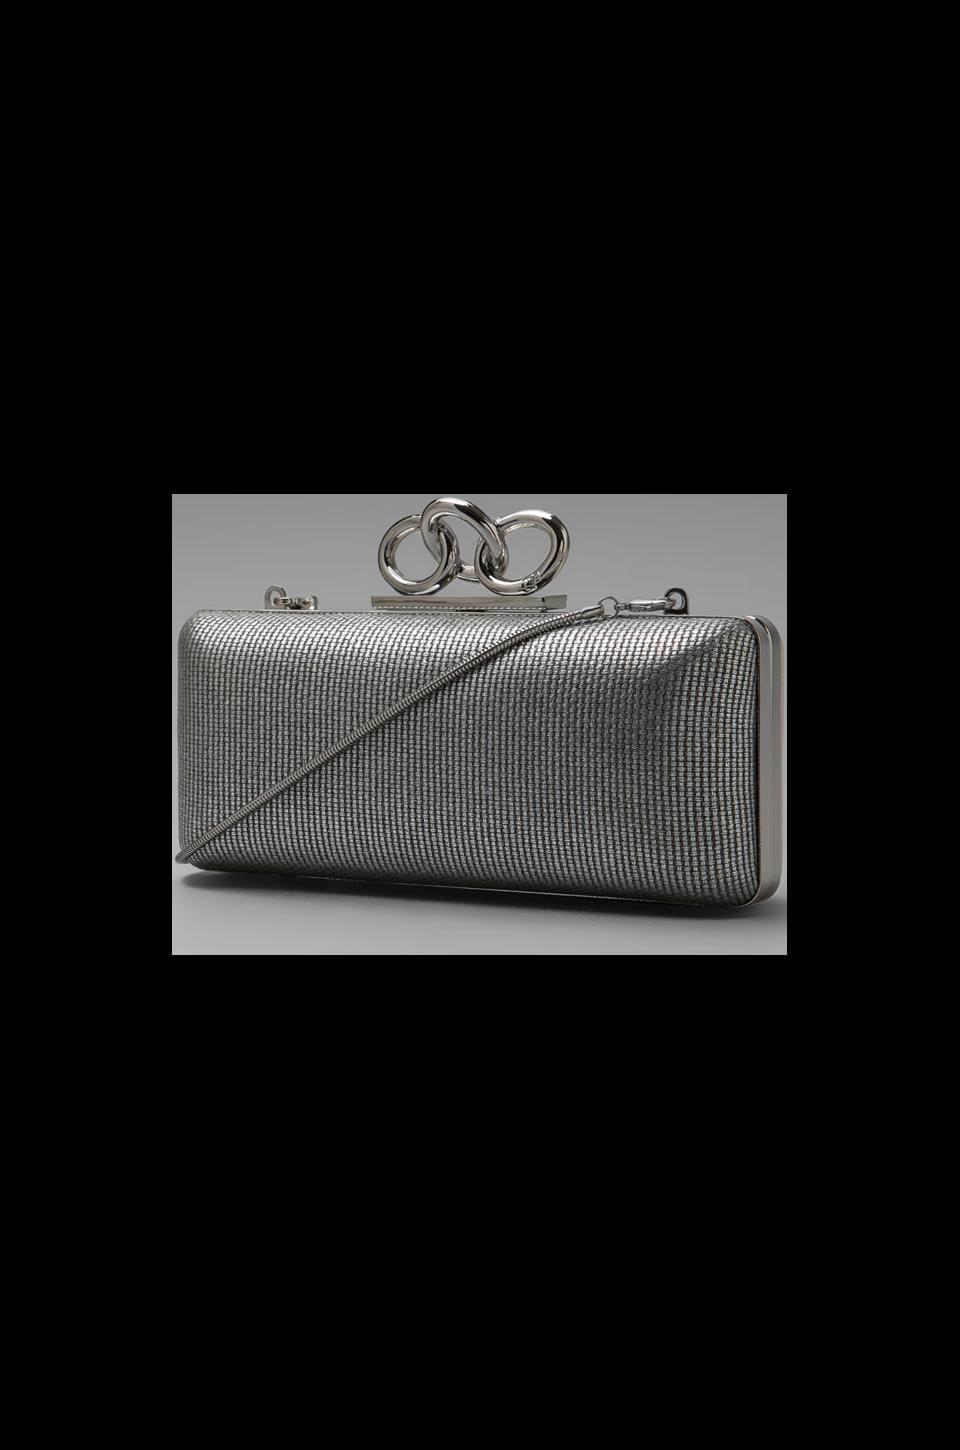 Diane von Furstenberg Sutra Metallic Canvas Clutch in Sliver